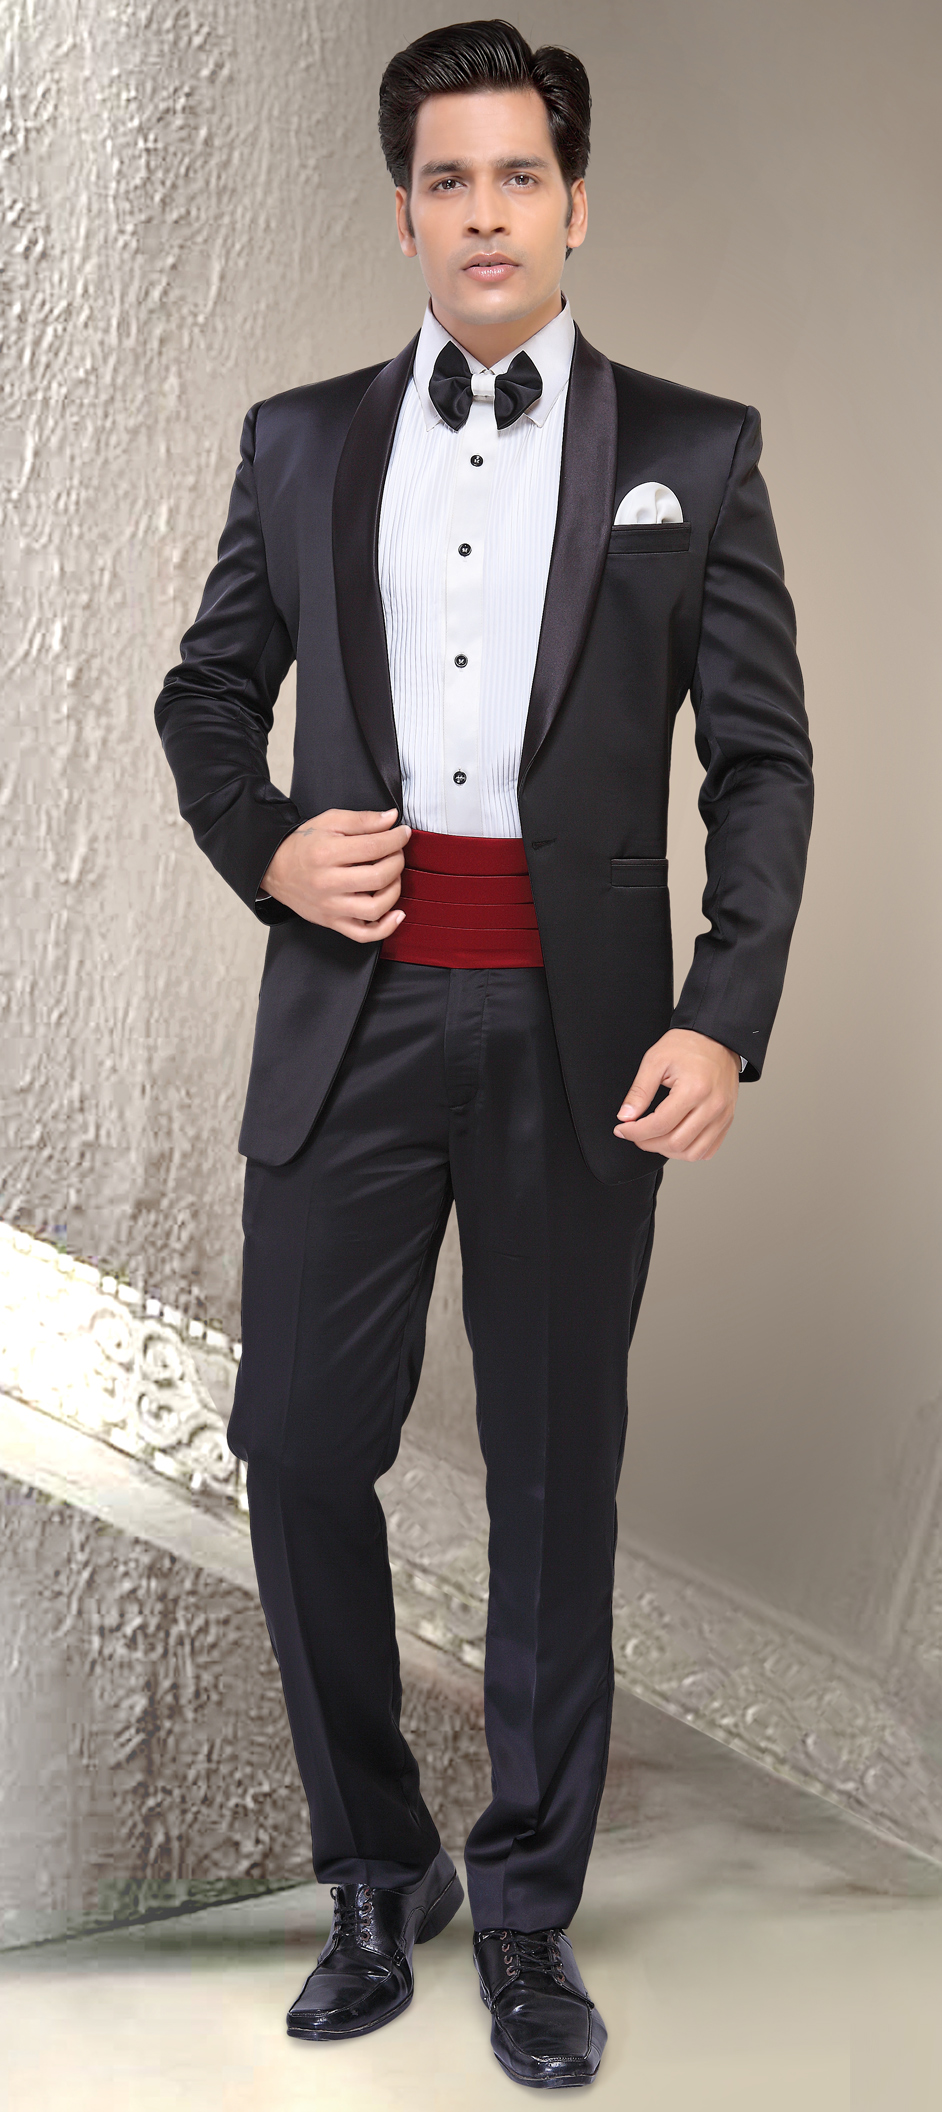 Men s Tuxedos, Wedding Tuxedos & Suits | Indian Wedding Saree